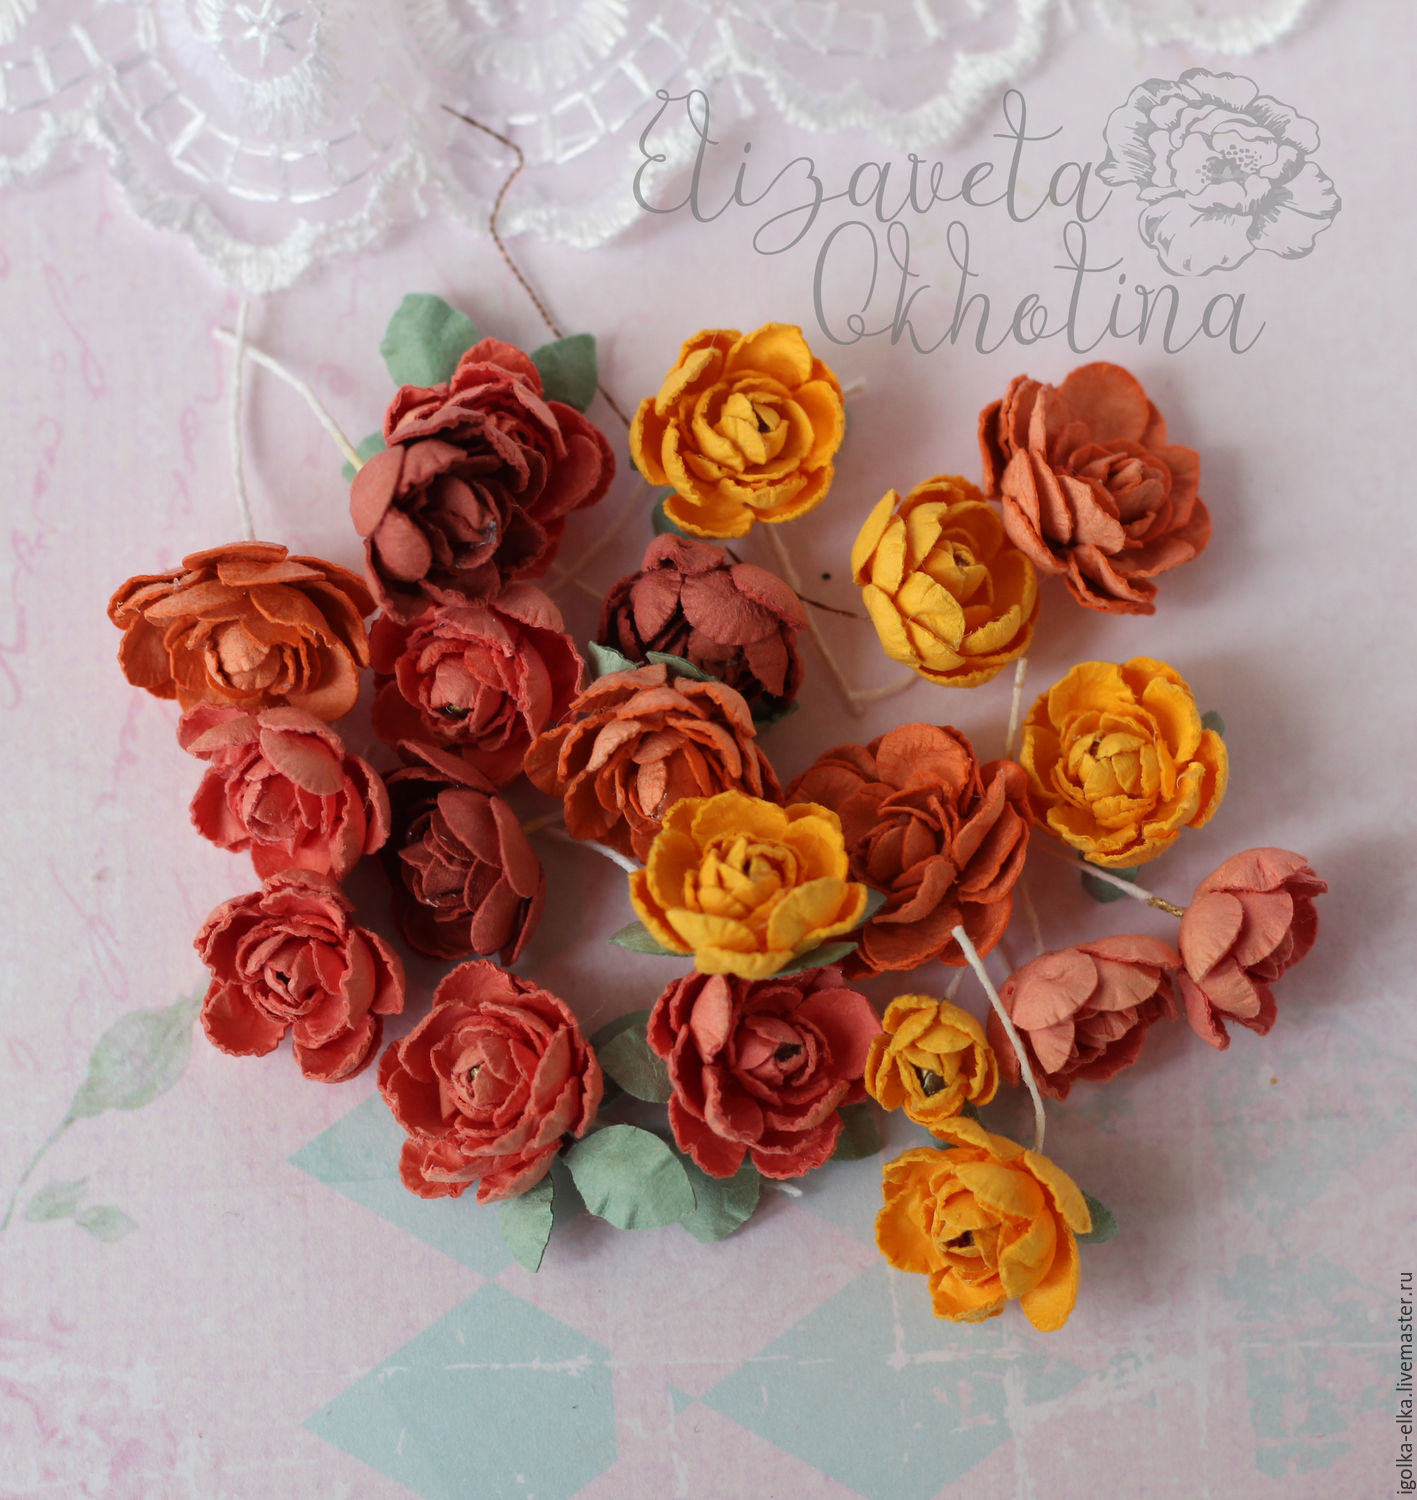 Paper Flowers Handmade Shop Online On Livemaster With Shipping